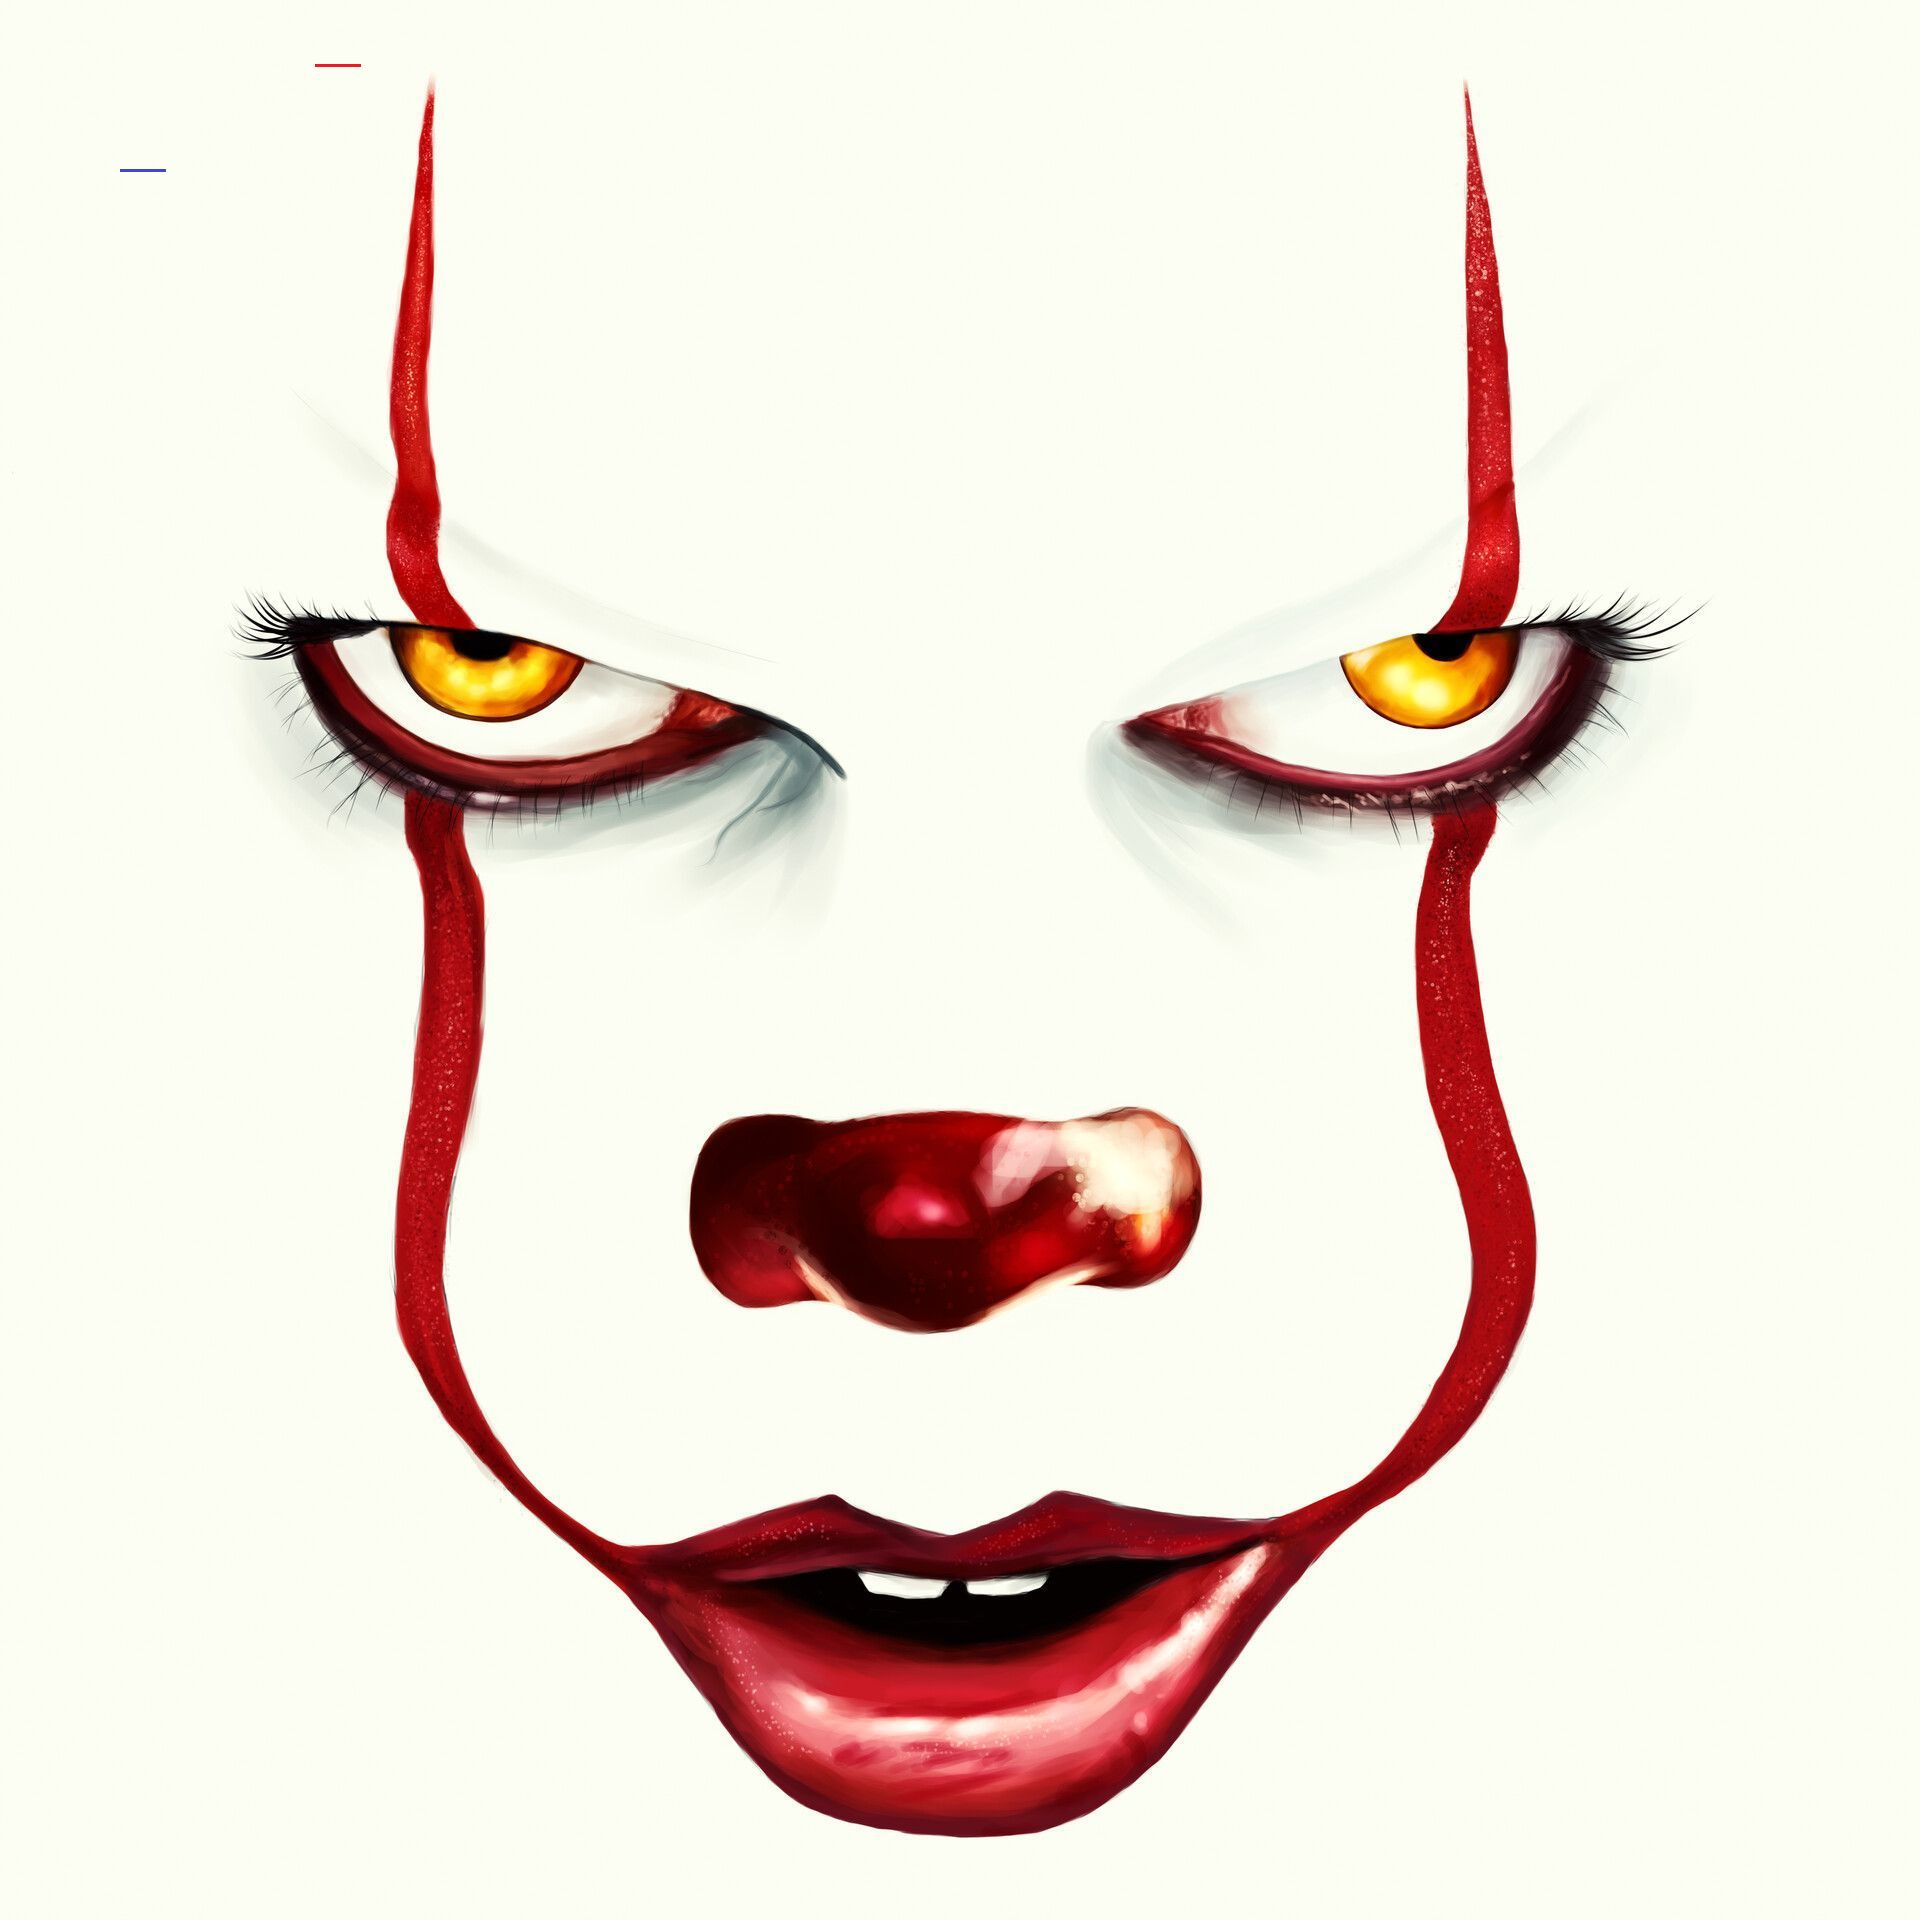 Pin By Adrijan Blagun On Debra In 2020 Scary Drawings Cool Art Drawings Clown Horror